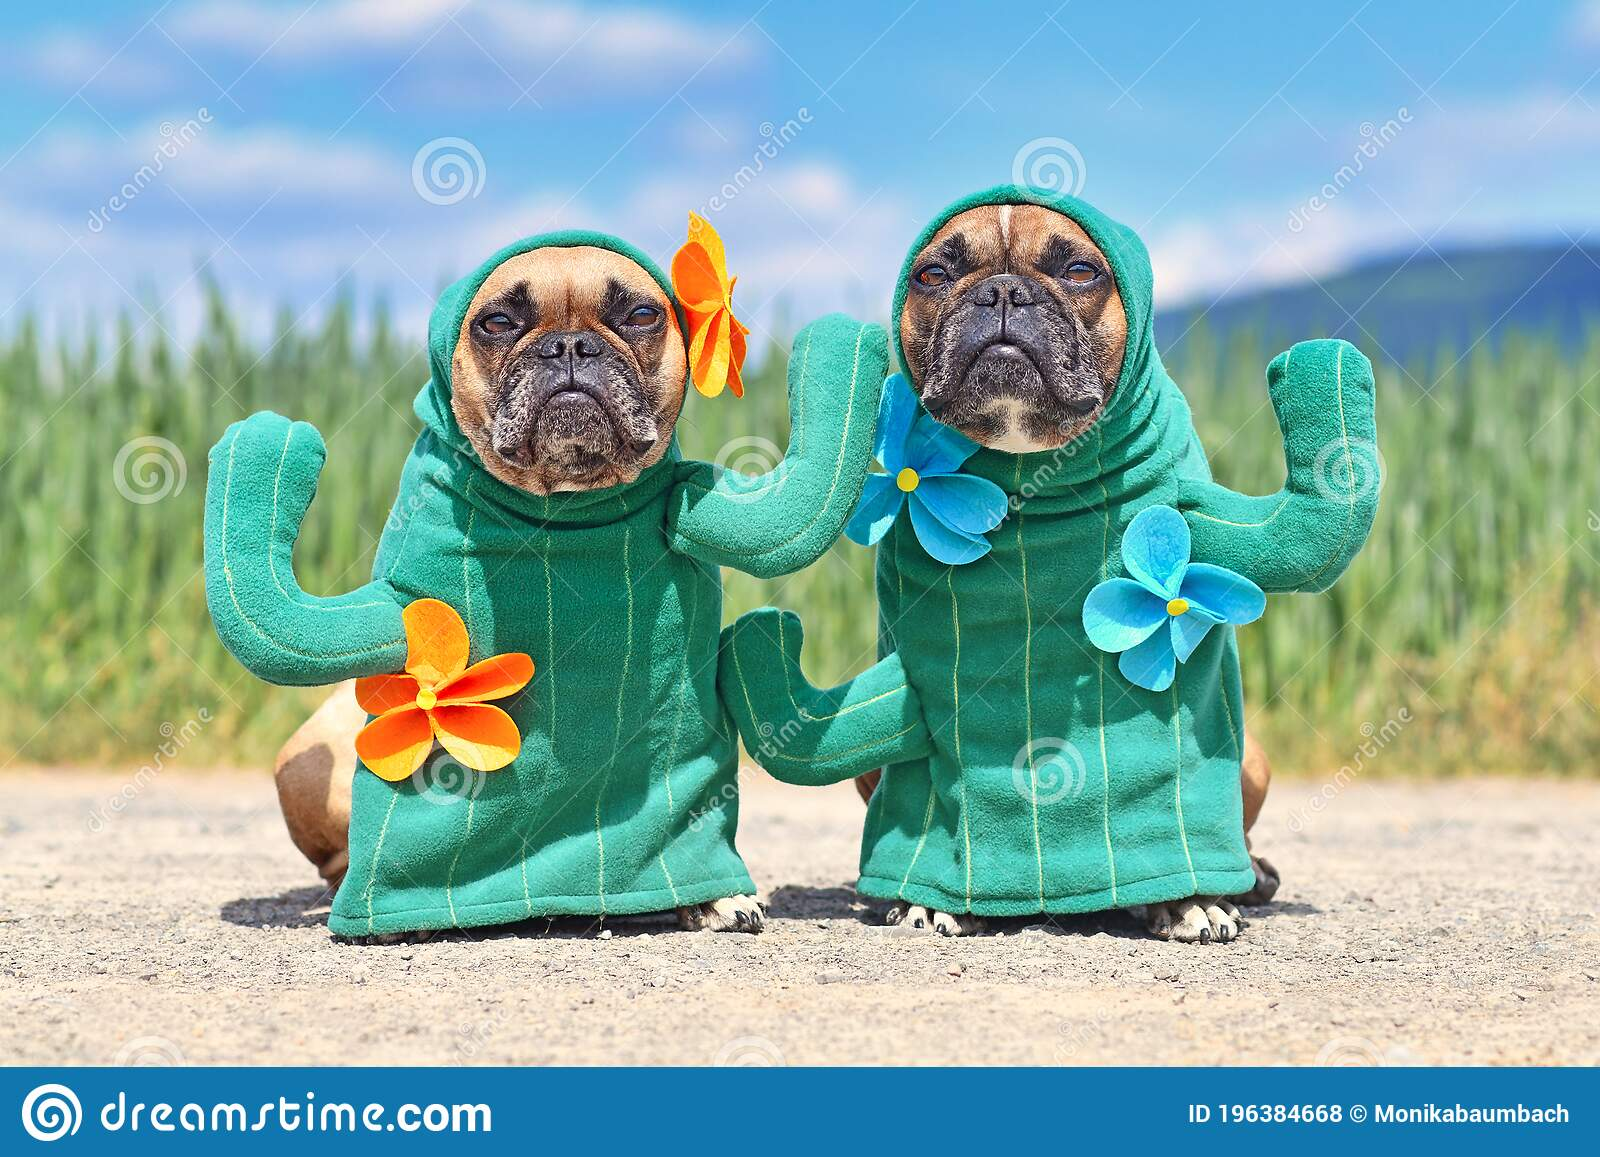 Funny French Bulldog Dogs Dressed Up With Funny Cactus Plant Halloween Dog Costumes With Fake Arms And Flowers Stock Photo Image Of Frenchie Handmade 196384668